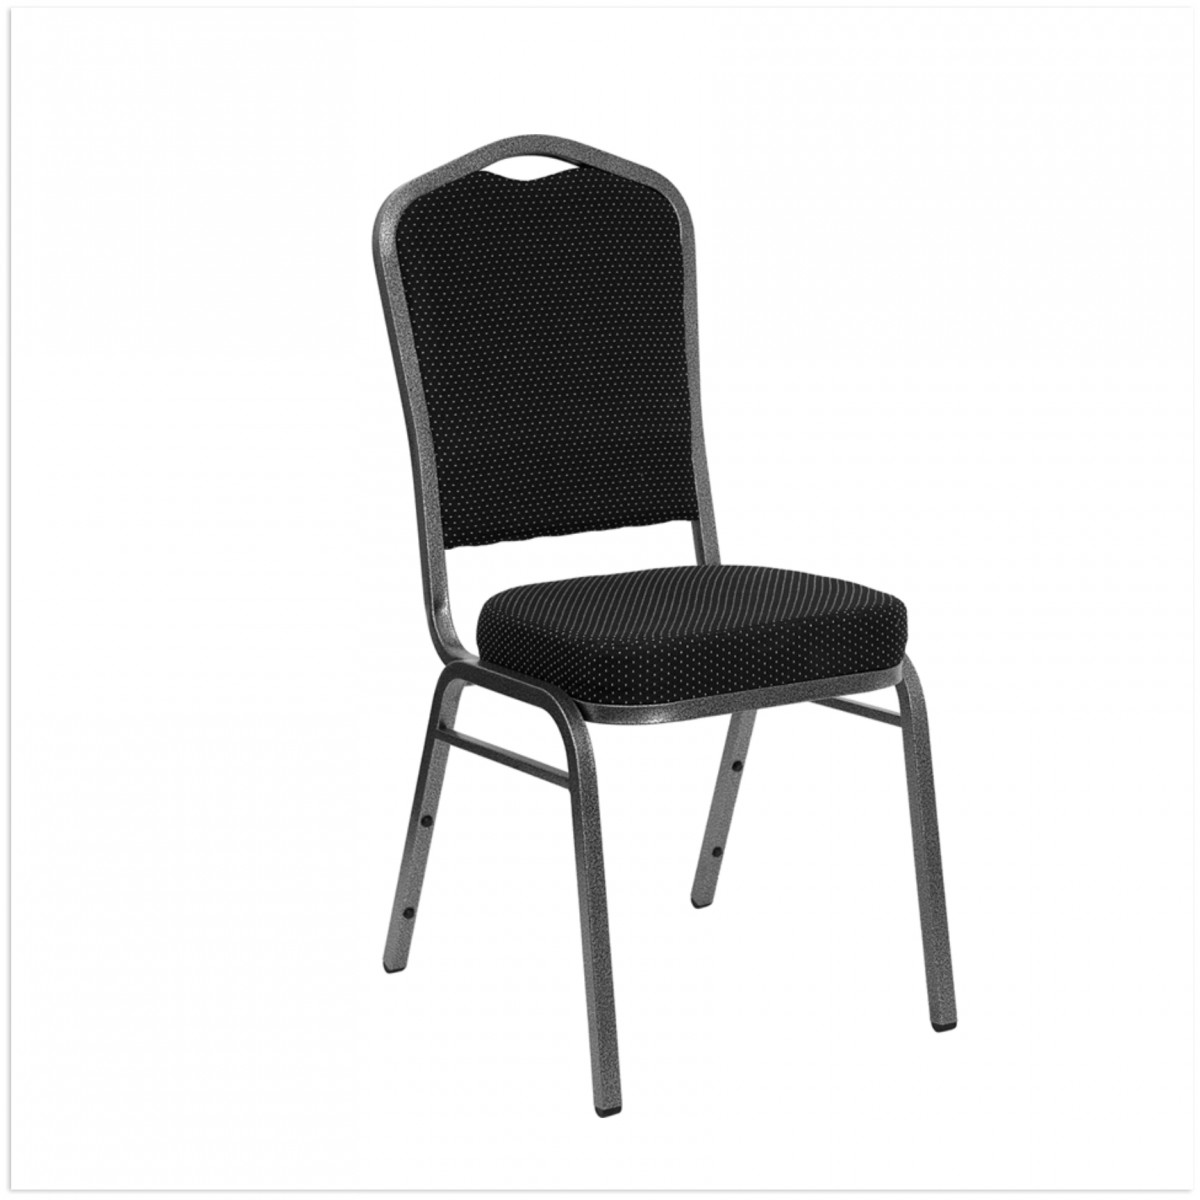 stackable church chairs wenger posture chair padded sanctuary classroom